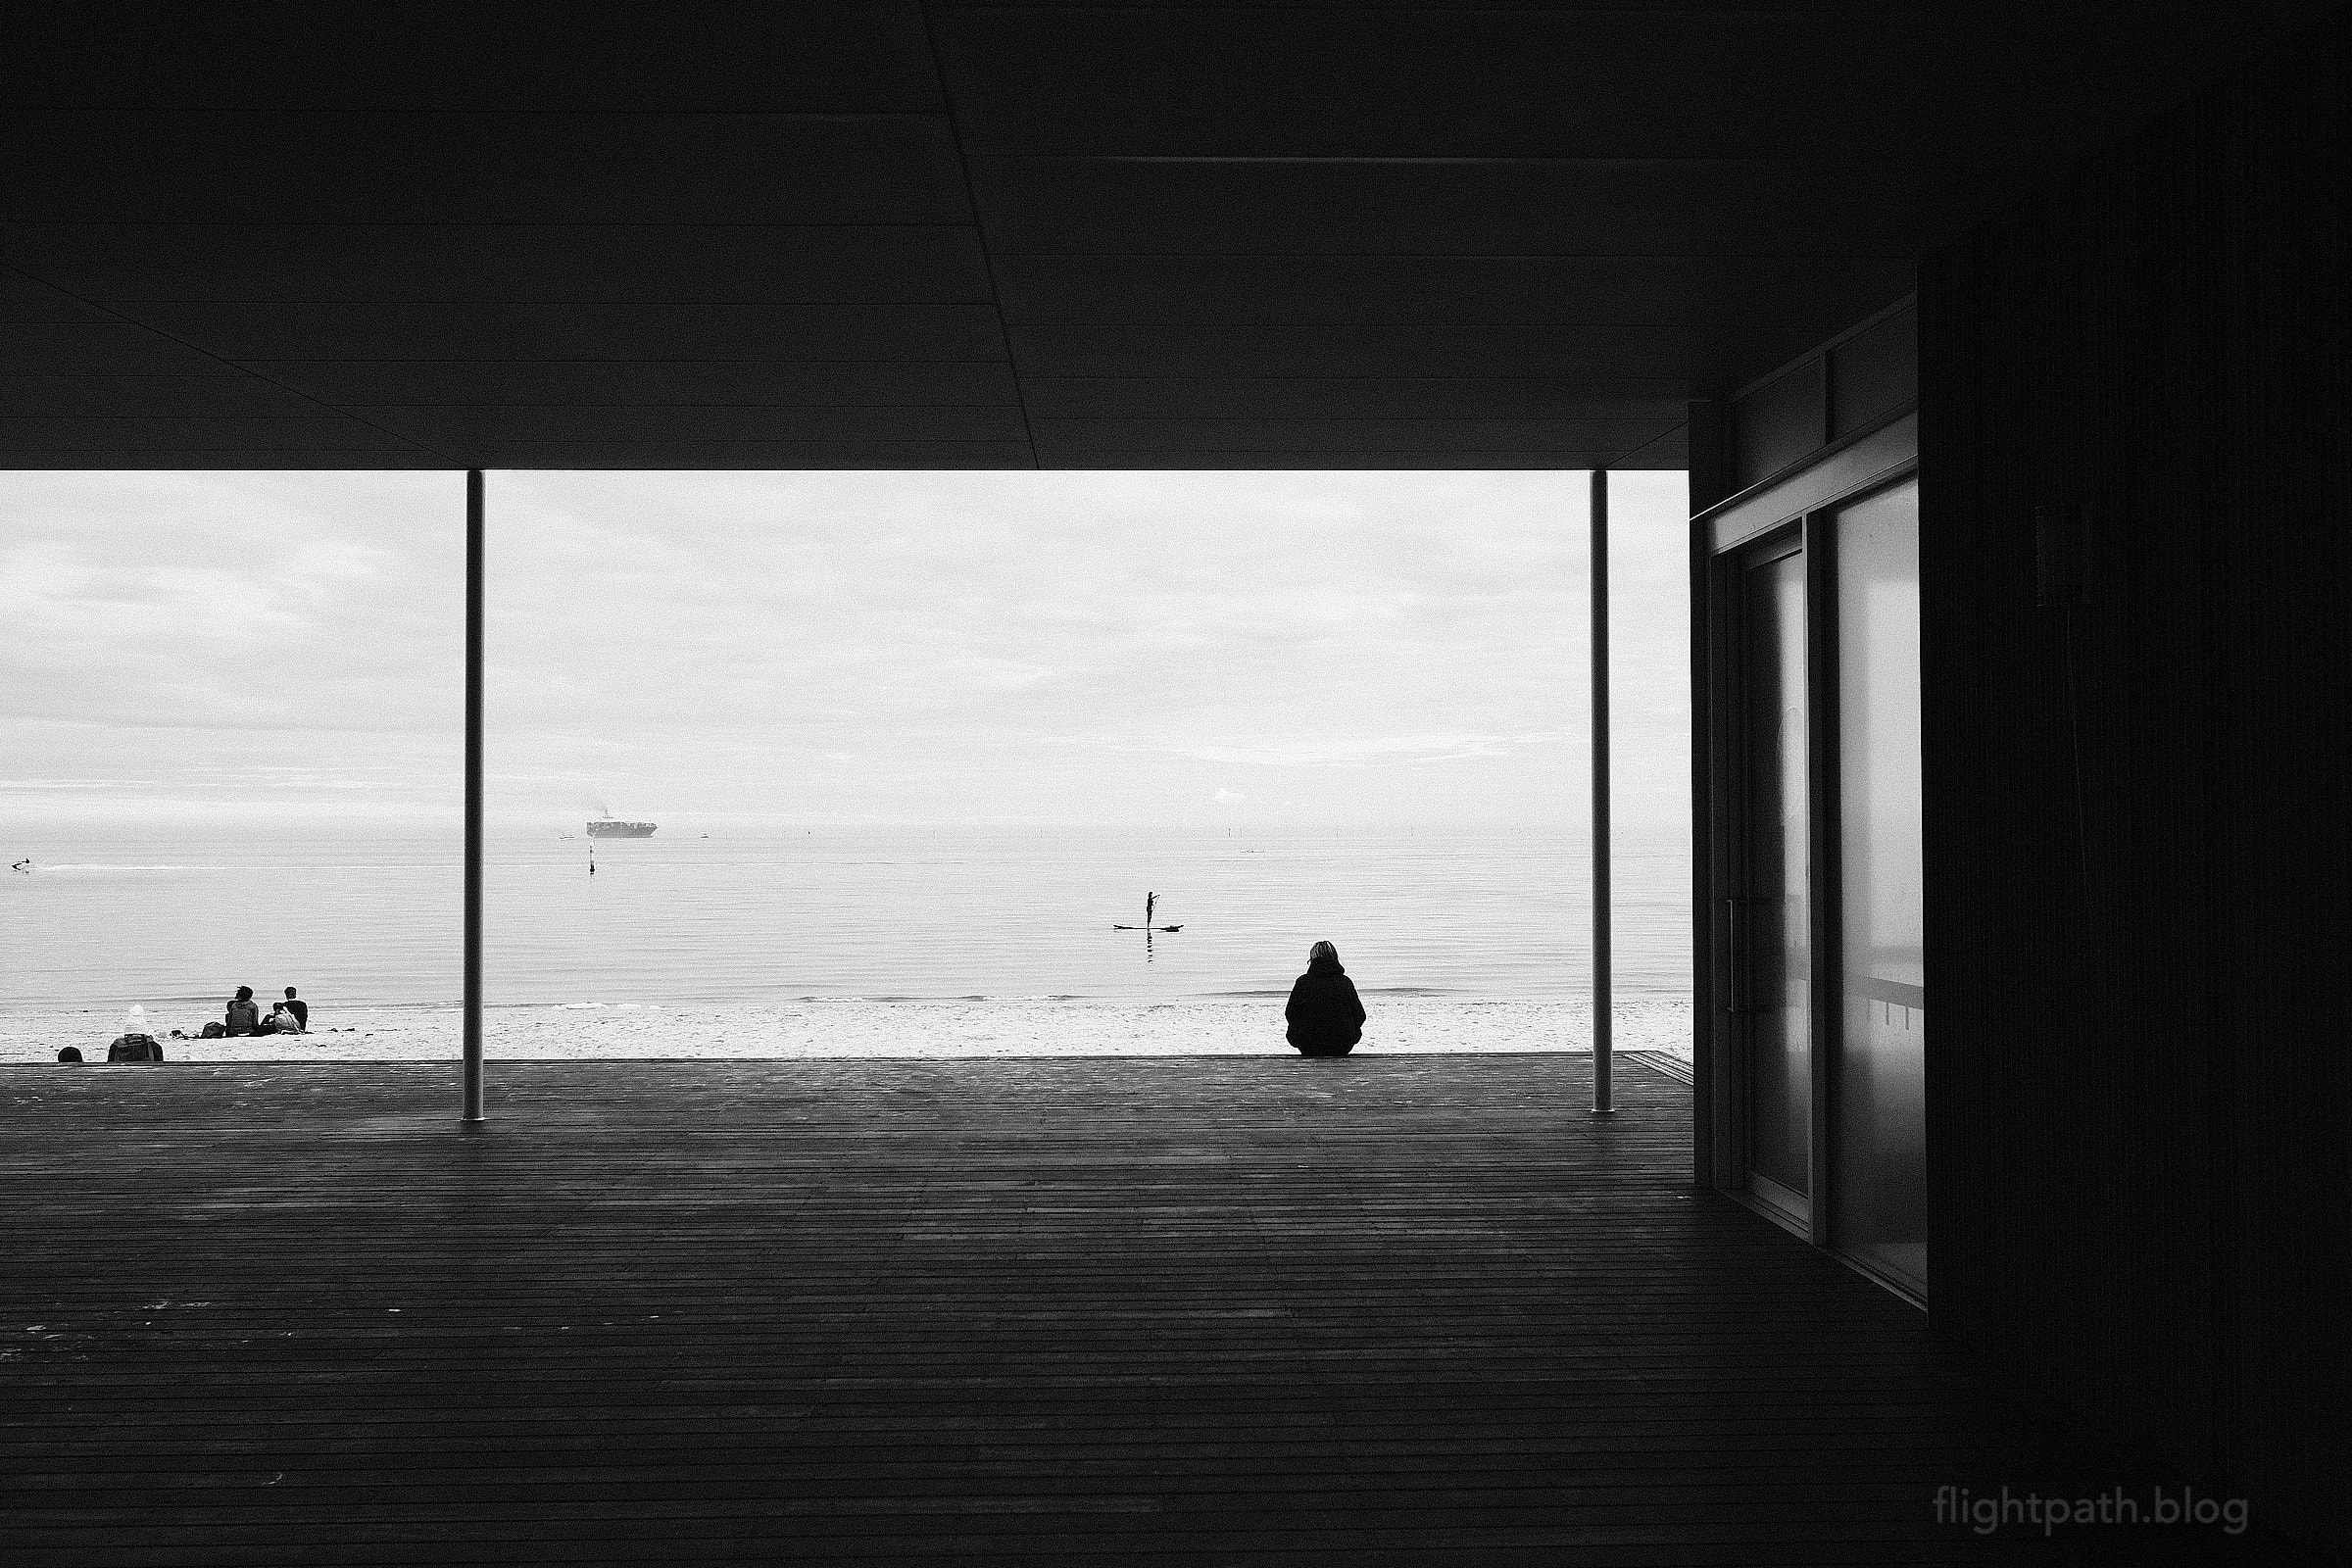 Framed by a wooden deck and pavilion, a person sits on the beach dressed for winter. They are watching a person in the calm water on a stand-up paddle board.